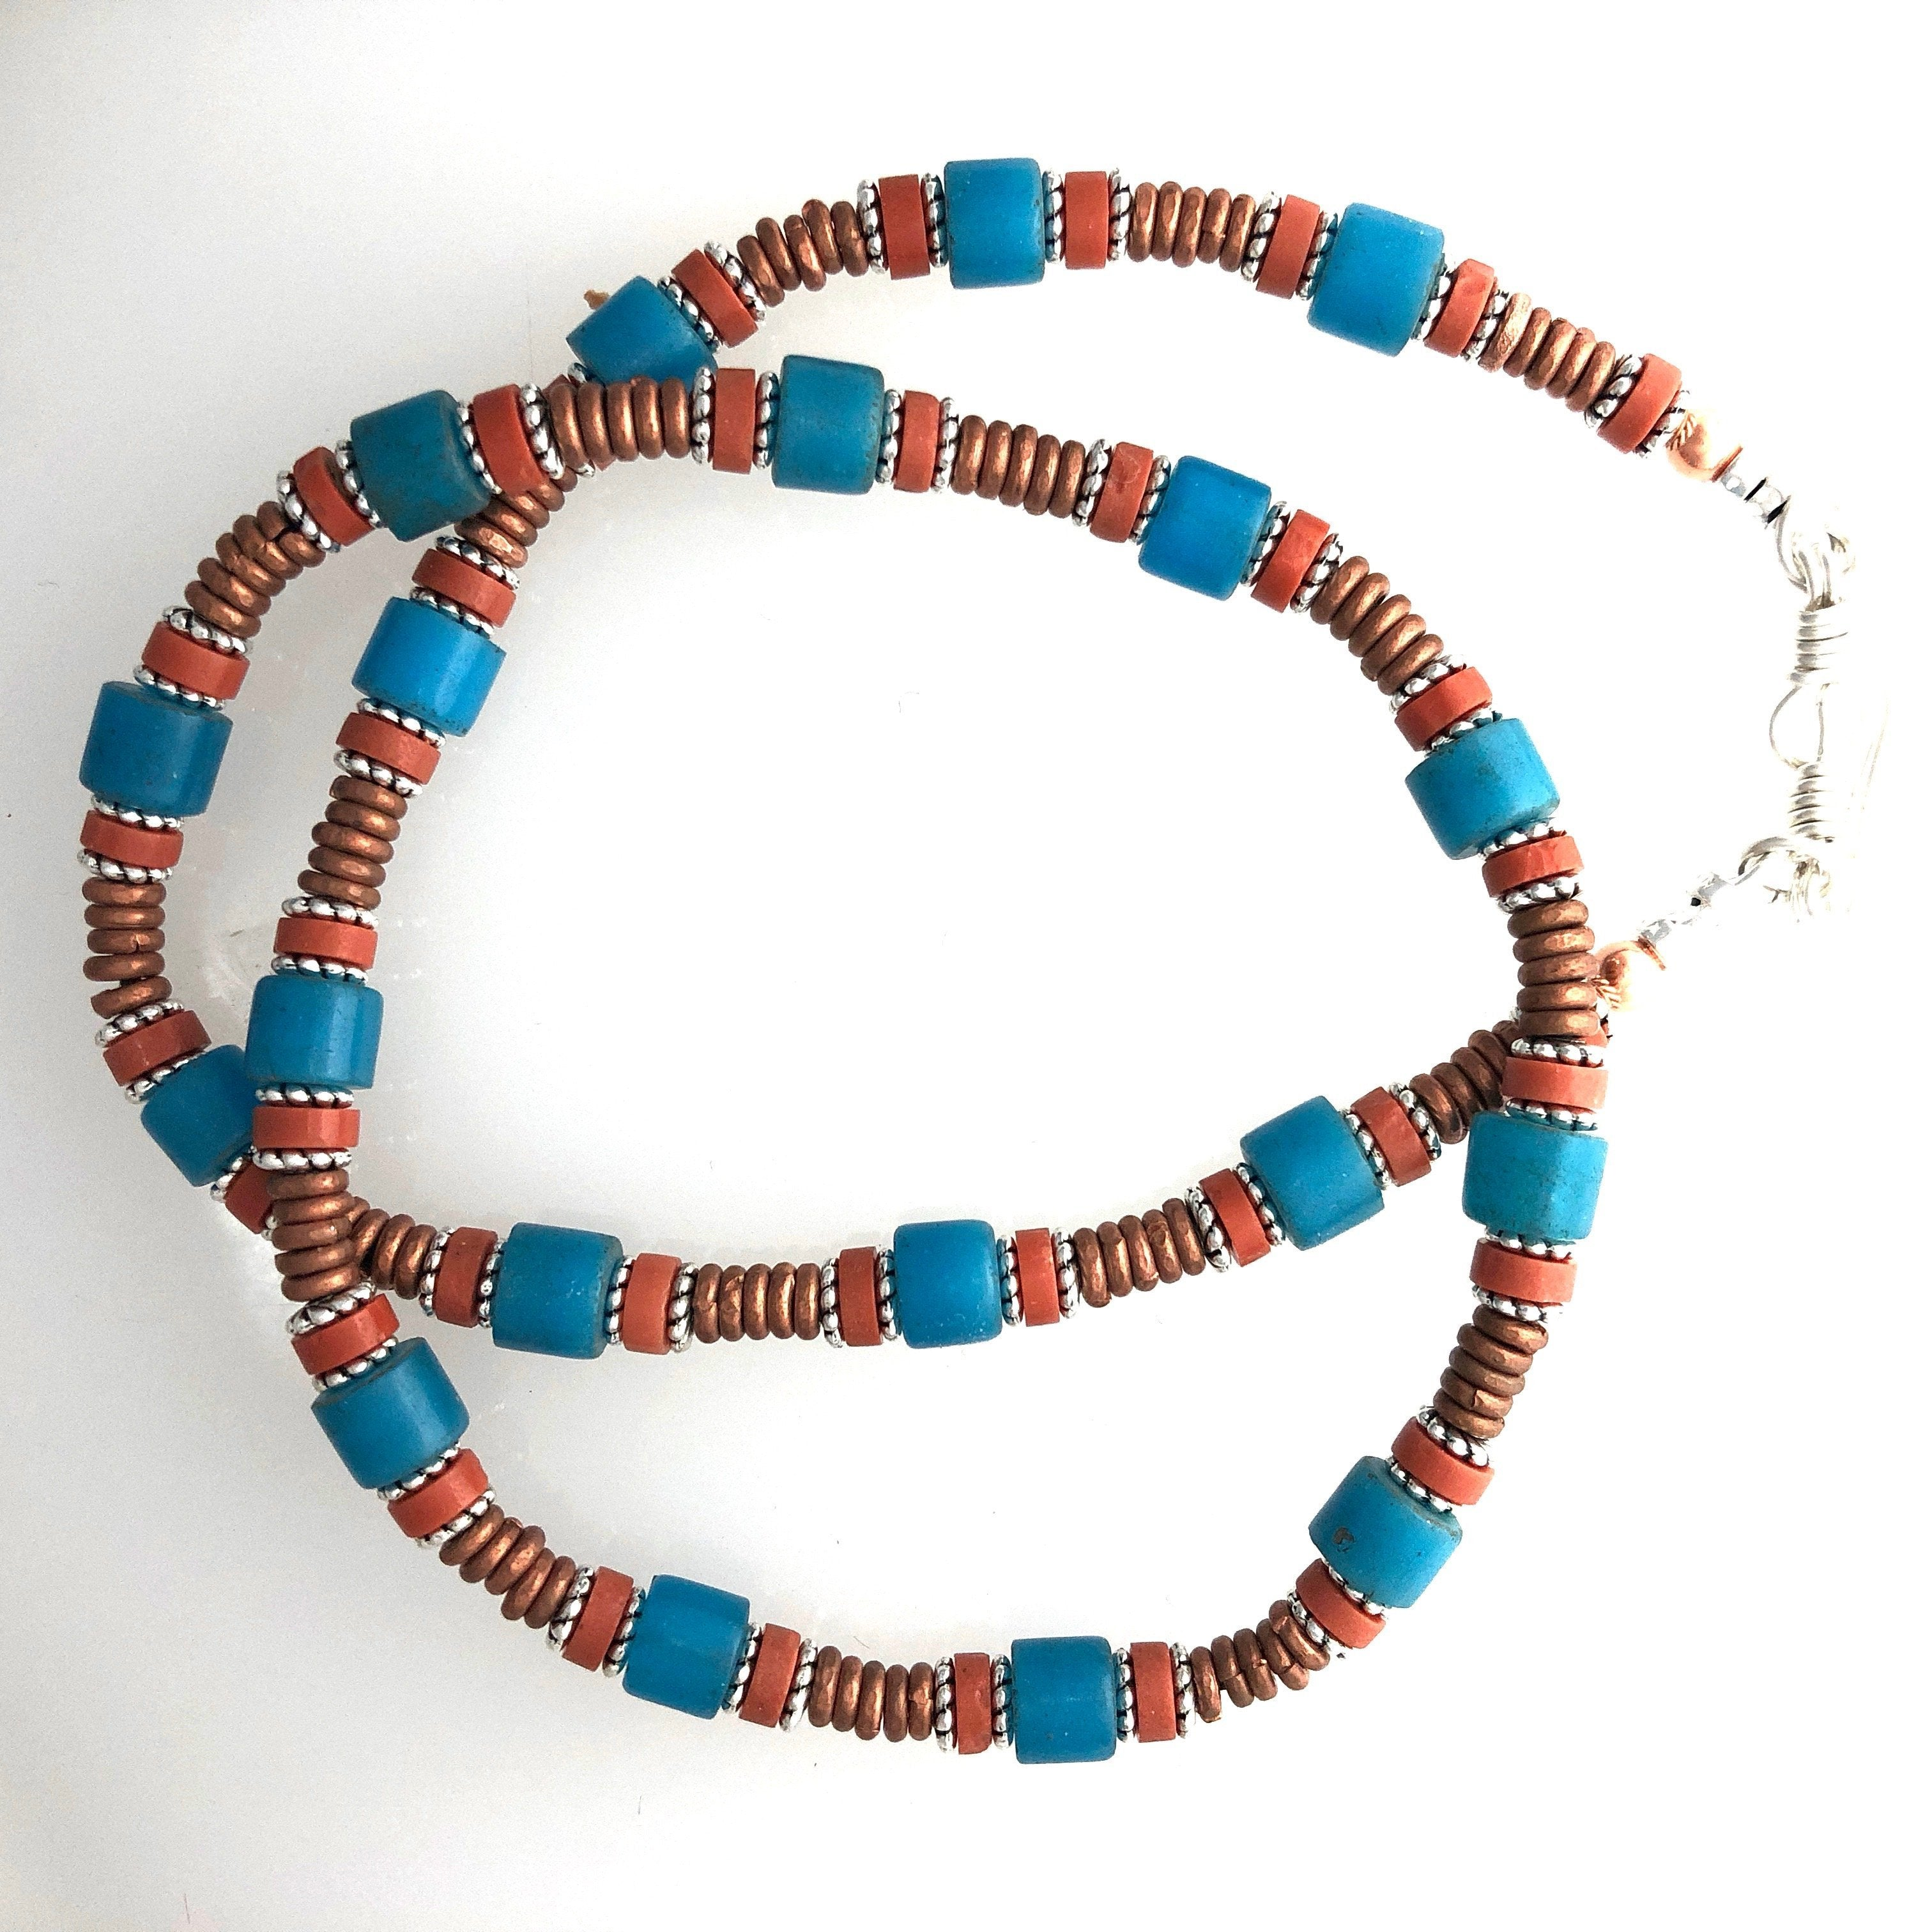 African Trade Bead Choker Necklace 17 ins.